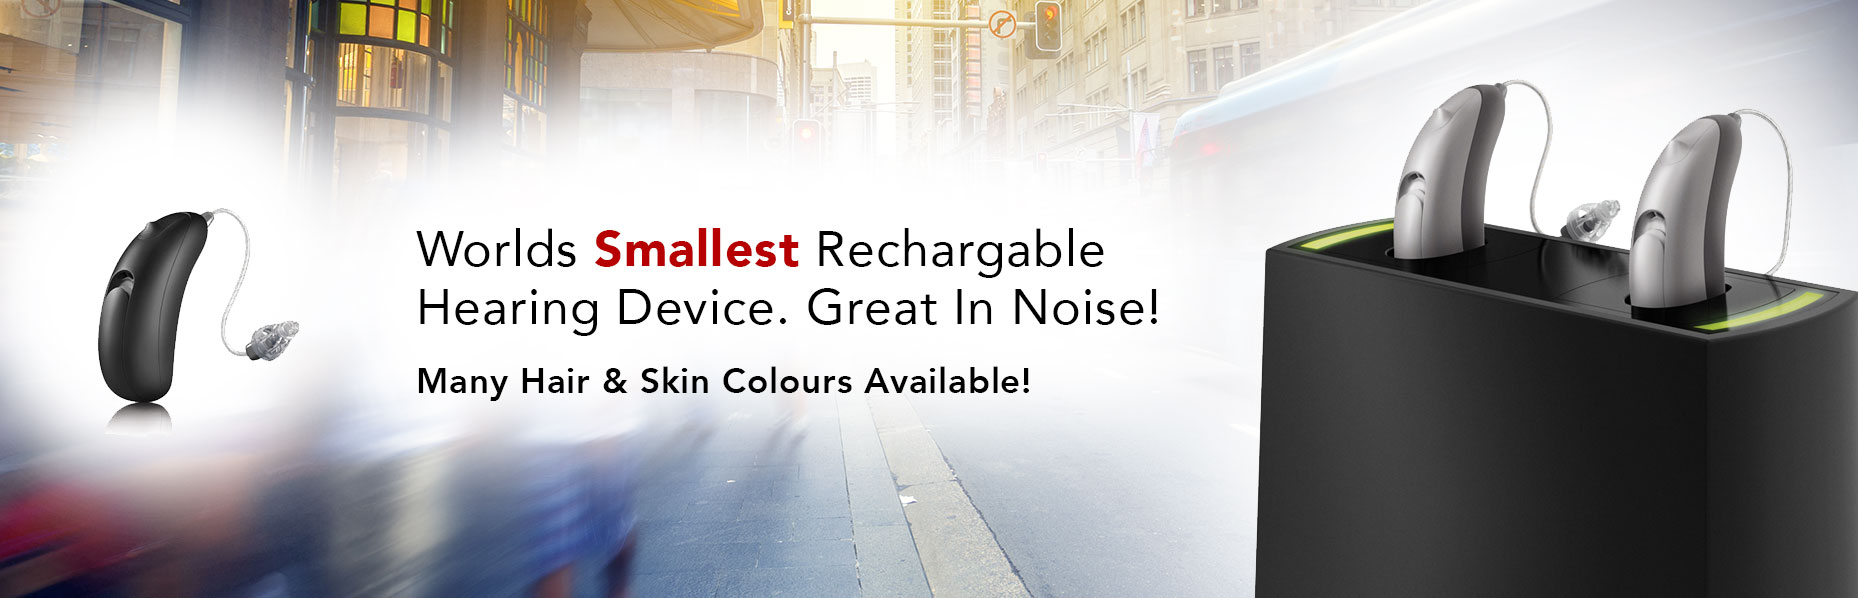 A pair of Moxi Fit R hearing aids on a charging case sits on the right side of a busy city-like background scenario and a single device on the other side of the image with a text in the middle that says World's Smallest Rechargeable Hearing Device. Great In Noise!